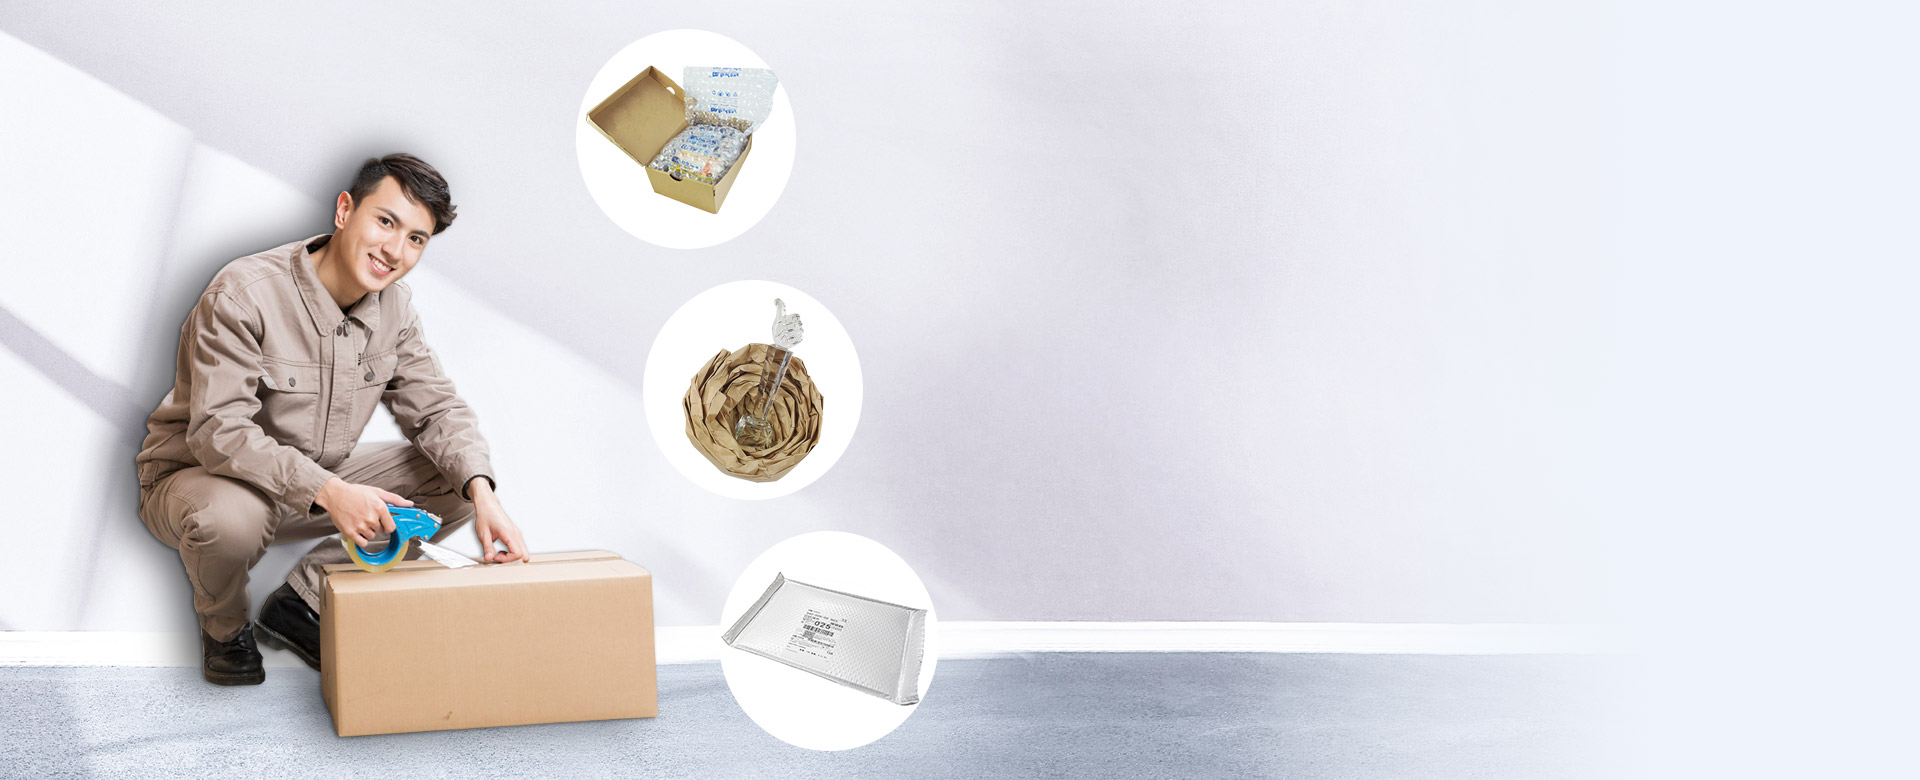 PROTECTIVE PACKAGING SOLUTIONS